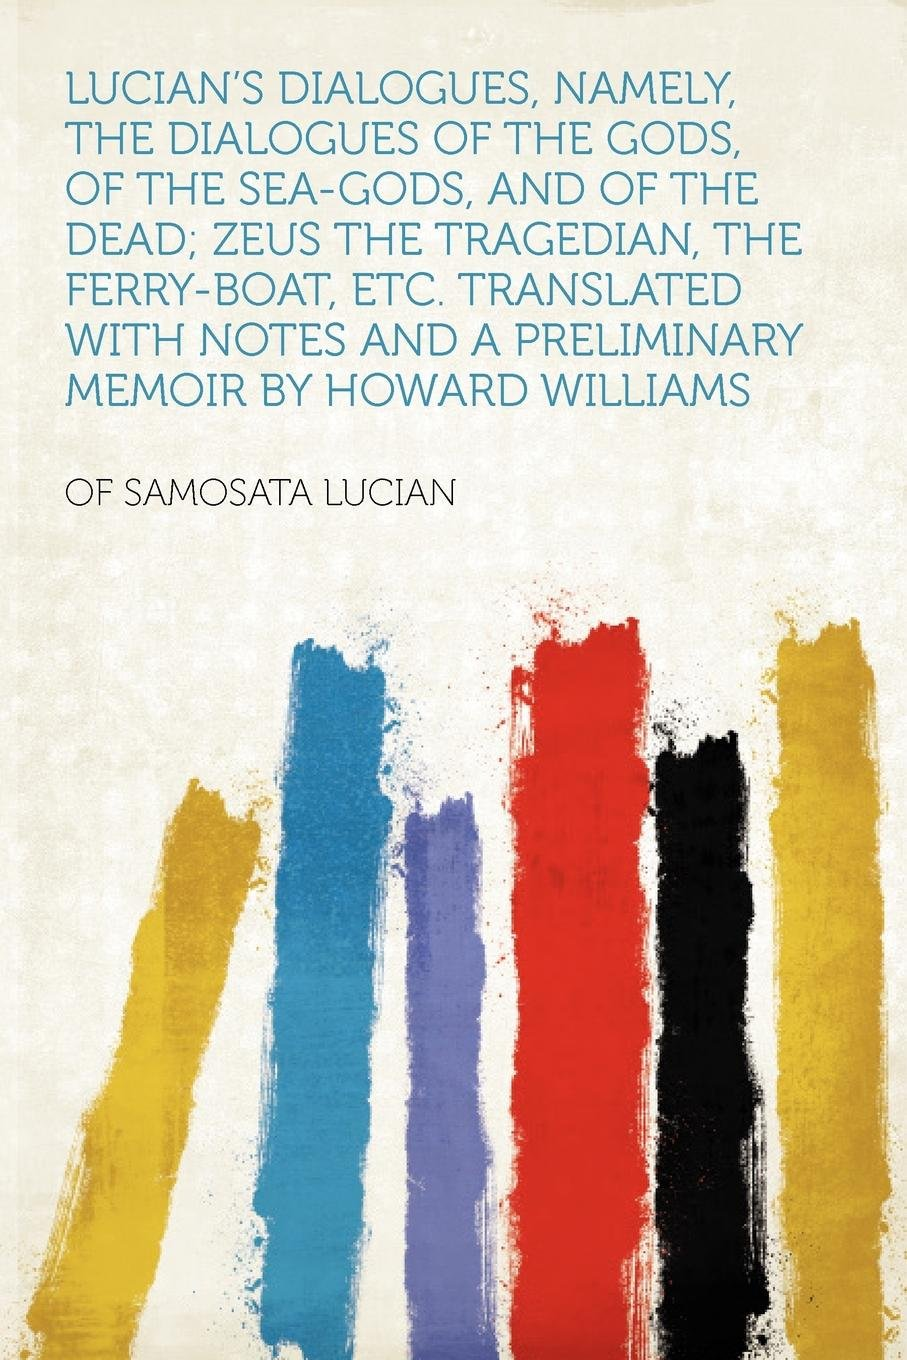 Download Lucian's Dialogues, Namely, the Dialogues of the Gods, of the Sea-gods, and of the Dead; Zeus the Tragedian, the Ferry-boat, Etc. Translated With Notes and a Preliminary Memoir by Howard Williams pdf